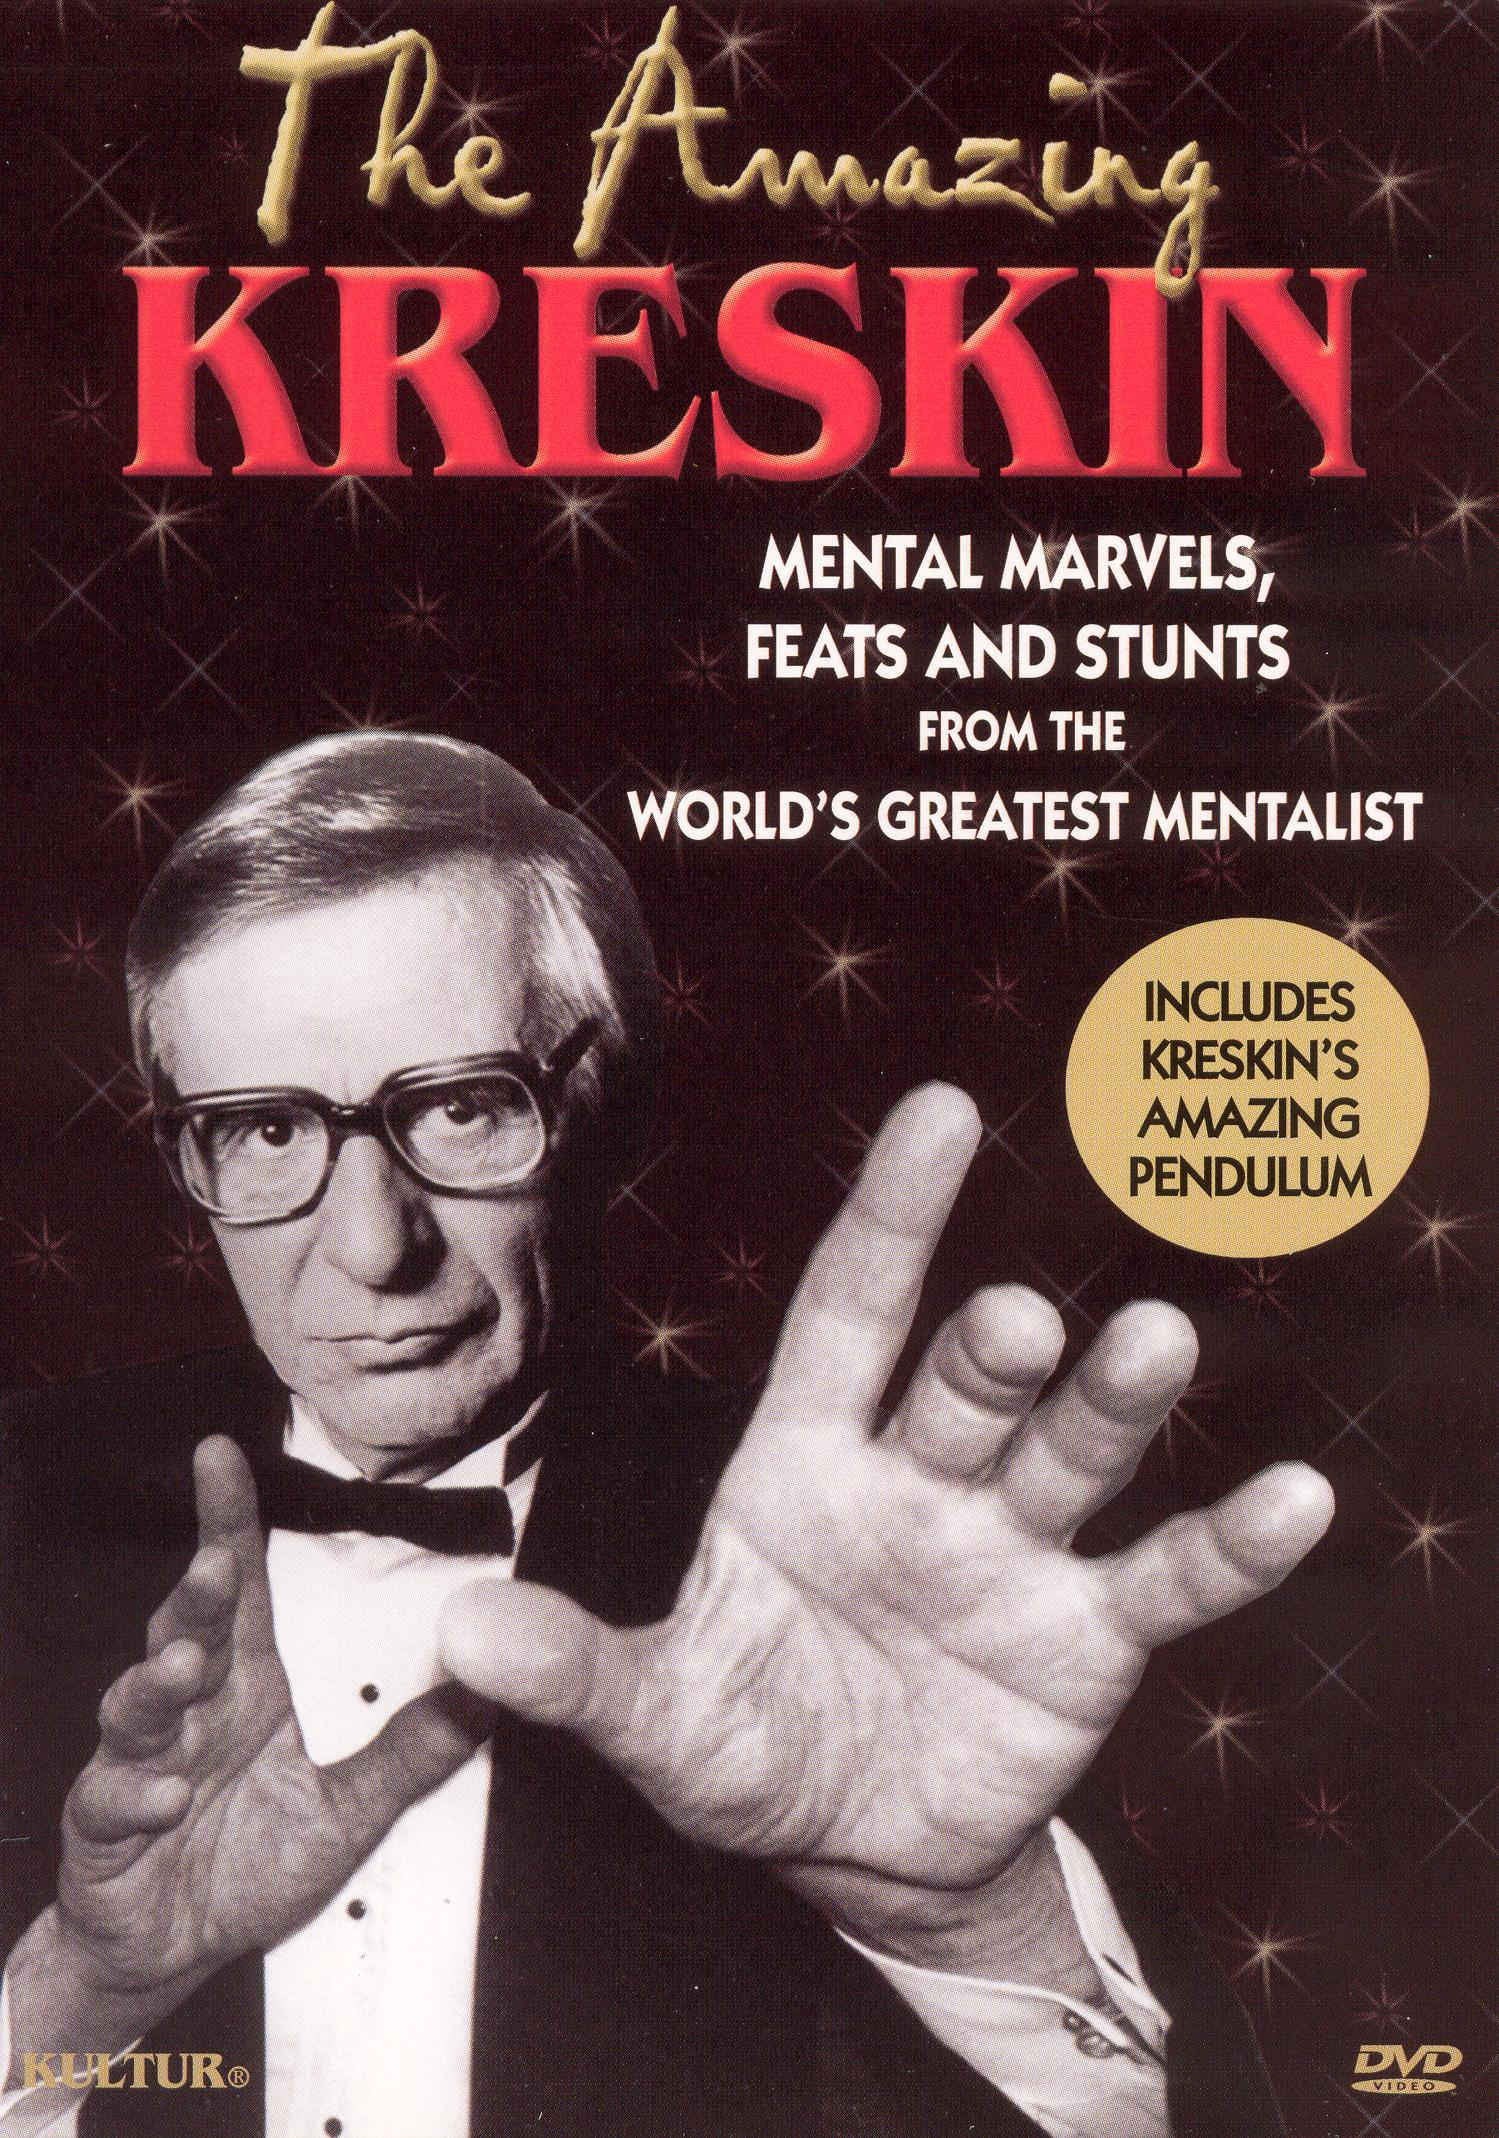 The Amazing Kreskin: Mental Marvels, Feats and Stunts From the World's Greatest Mentalist